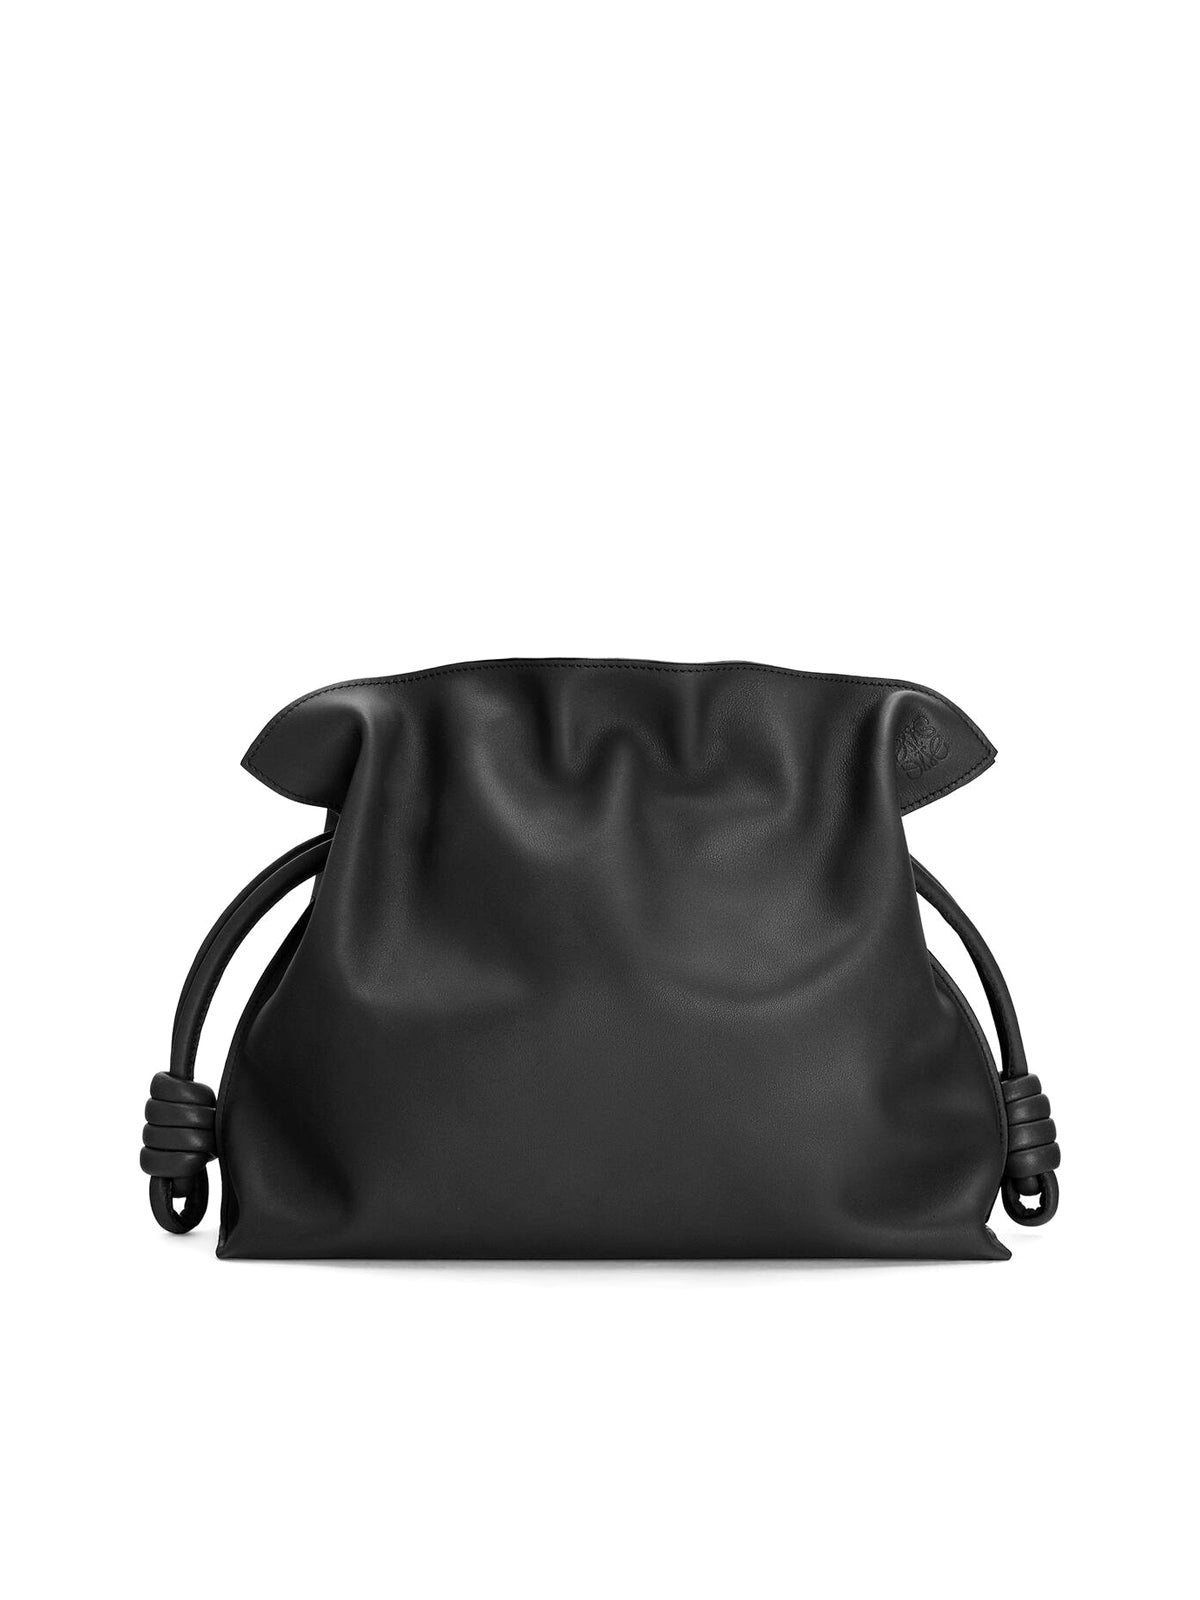 Flamenco shoulder bag